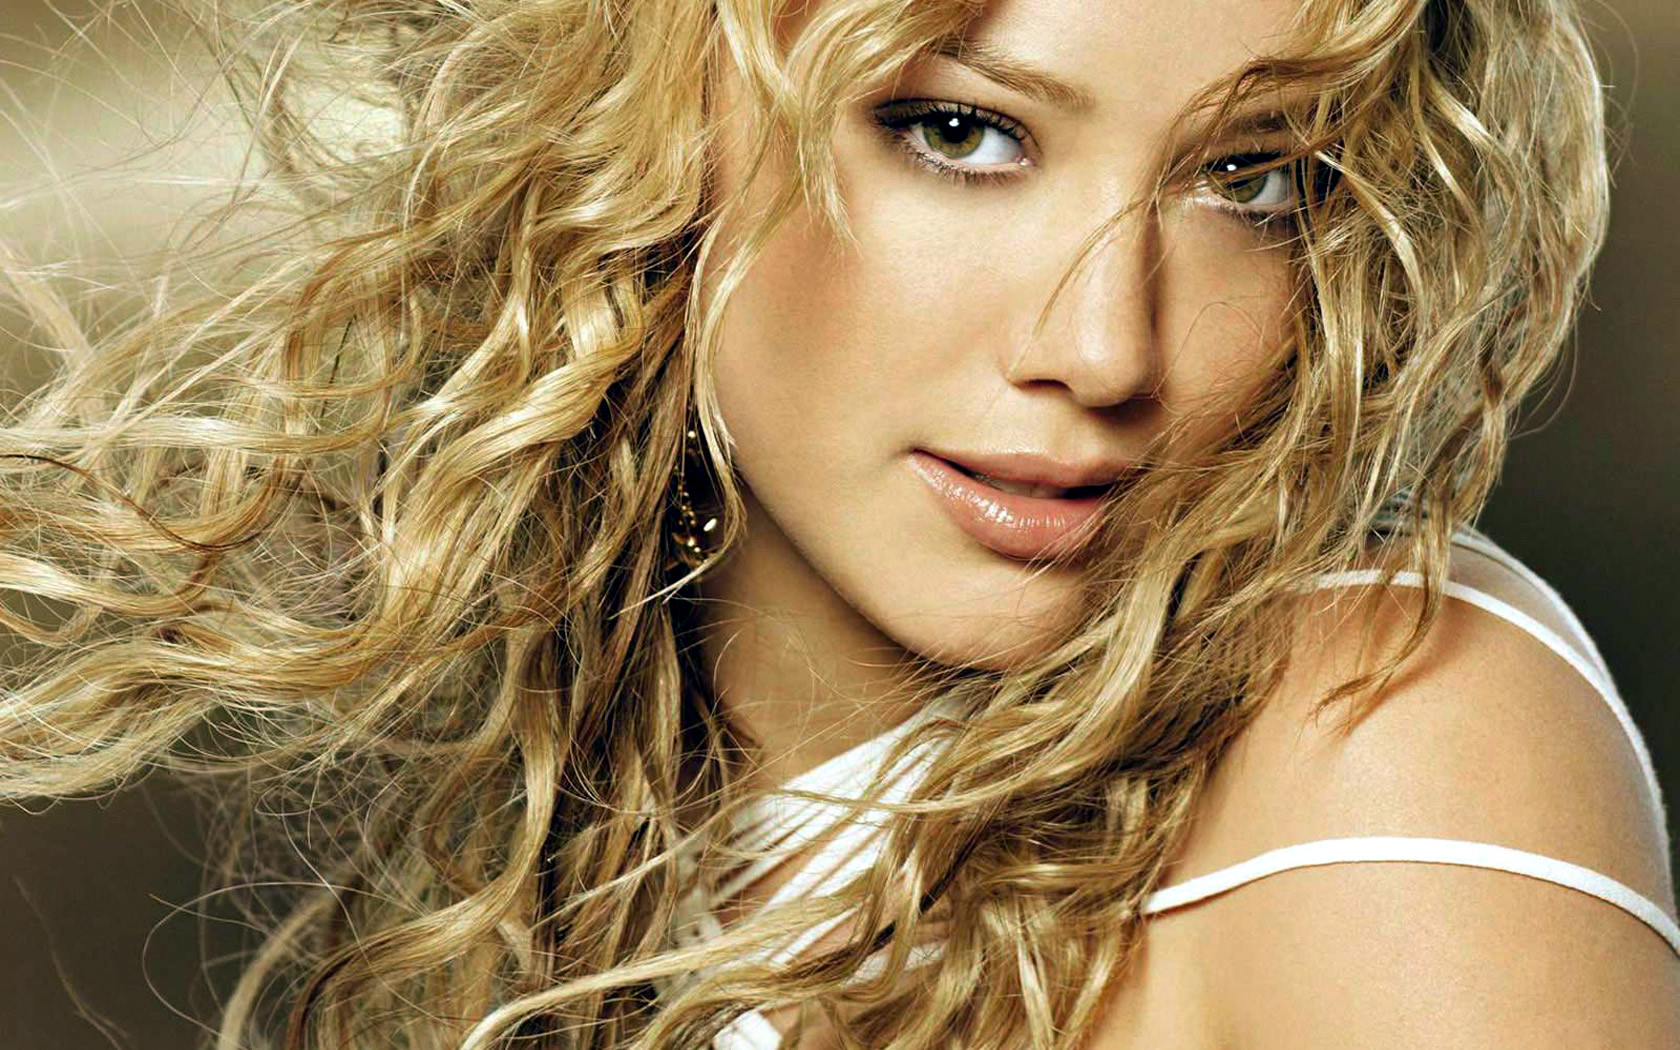 hot and sexy hilary duff hd wallpapers 2015 - all hd wallpapers